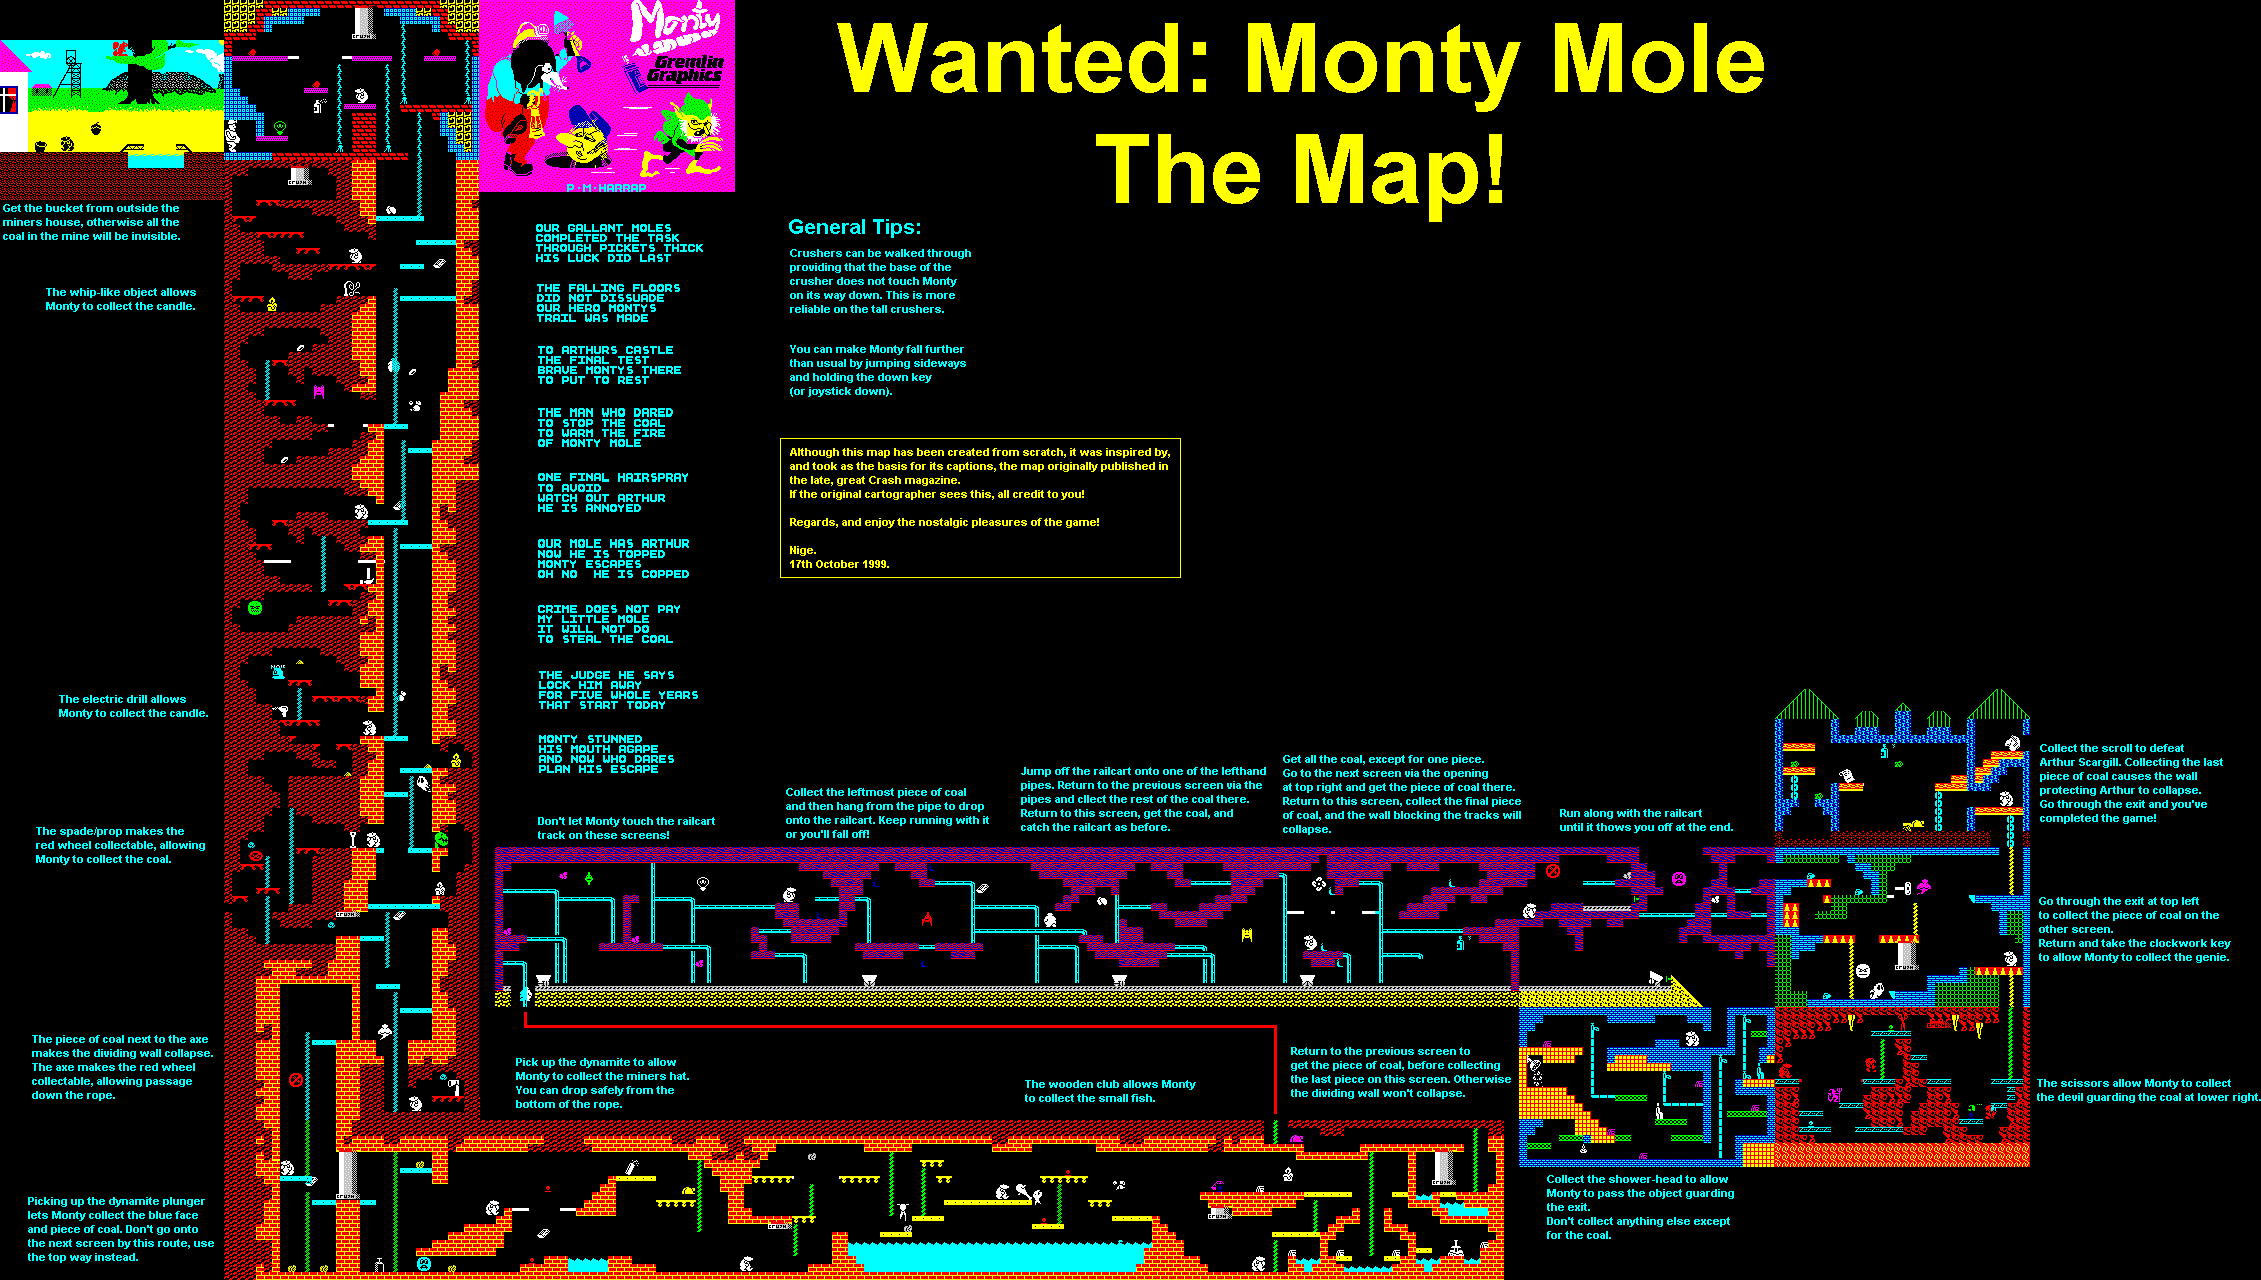 Monty Mole 1 - Wanted: Monty Mole - The Map